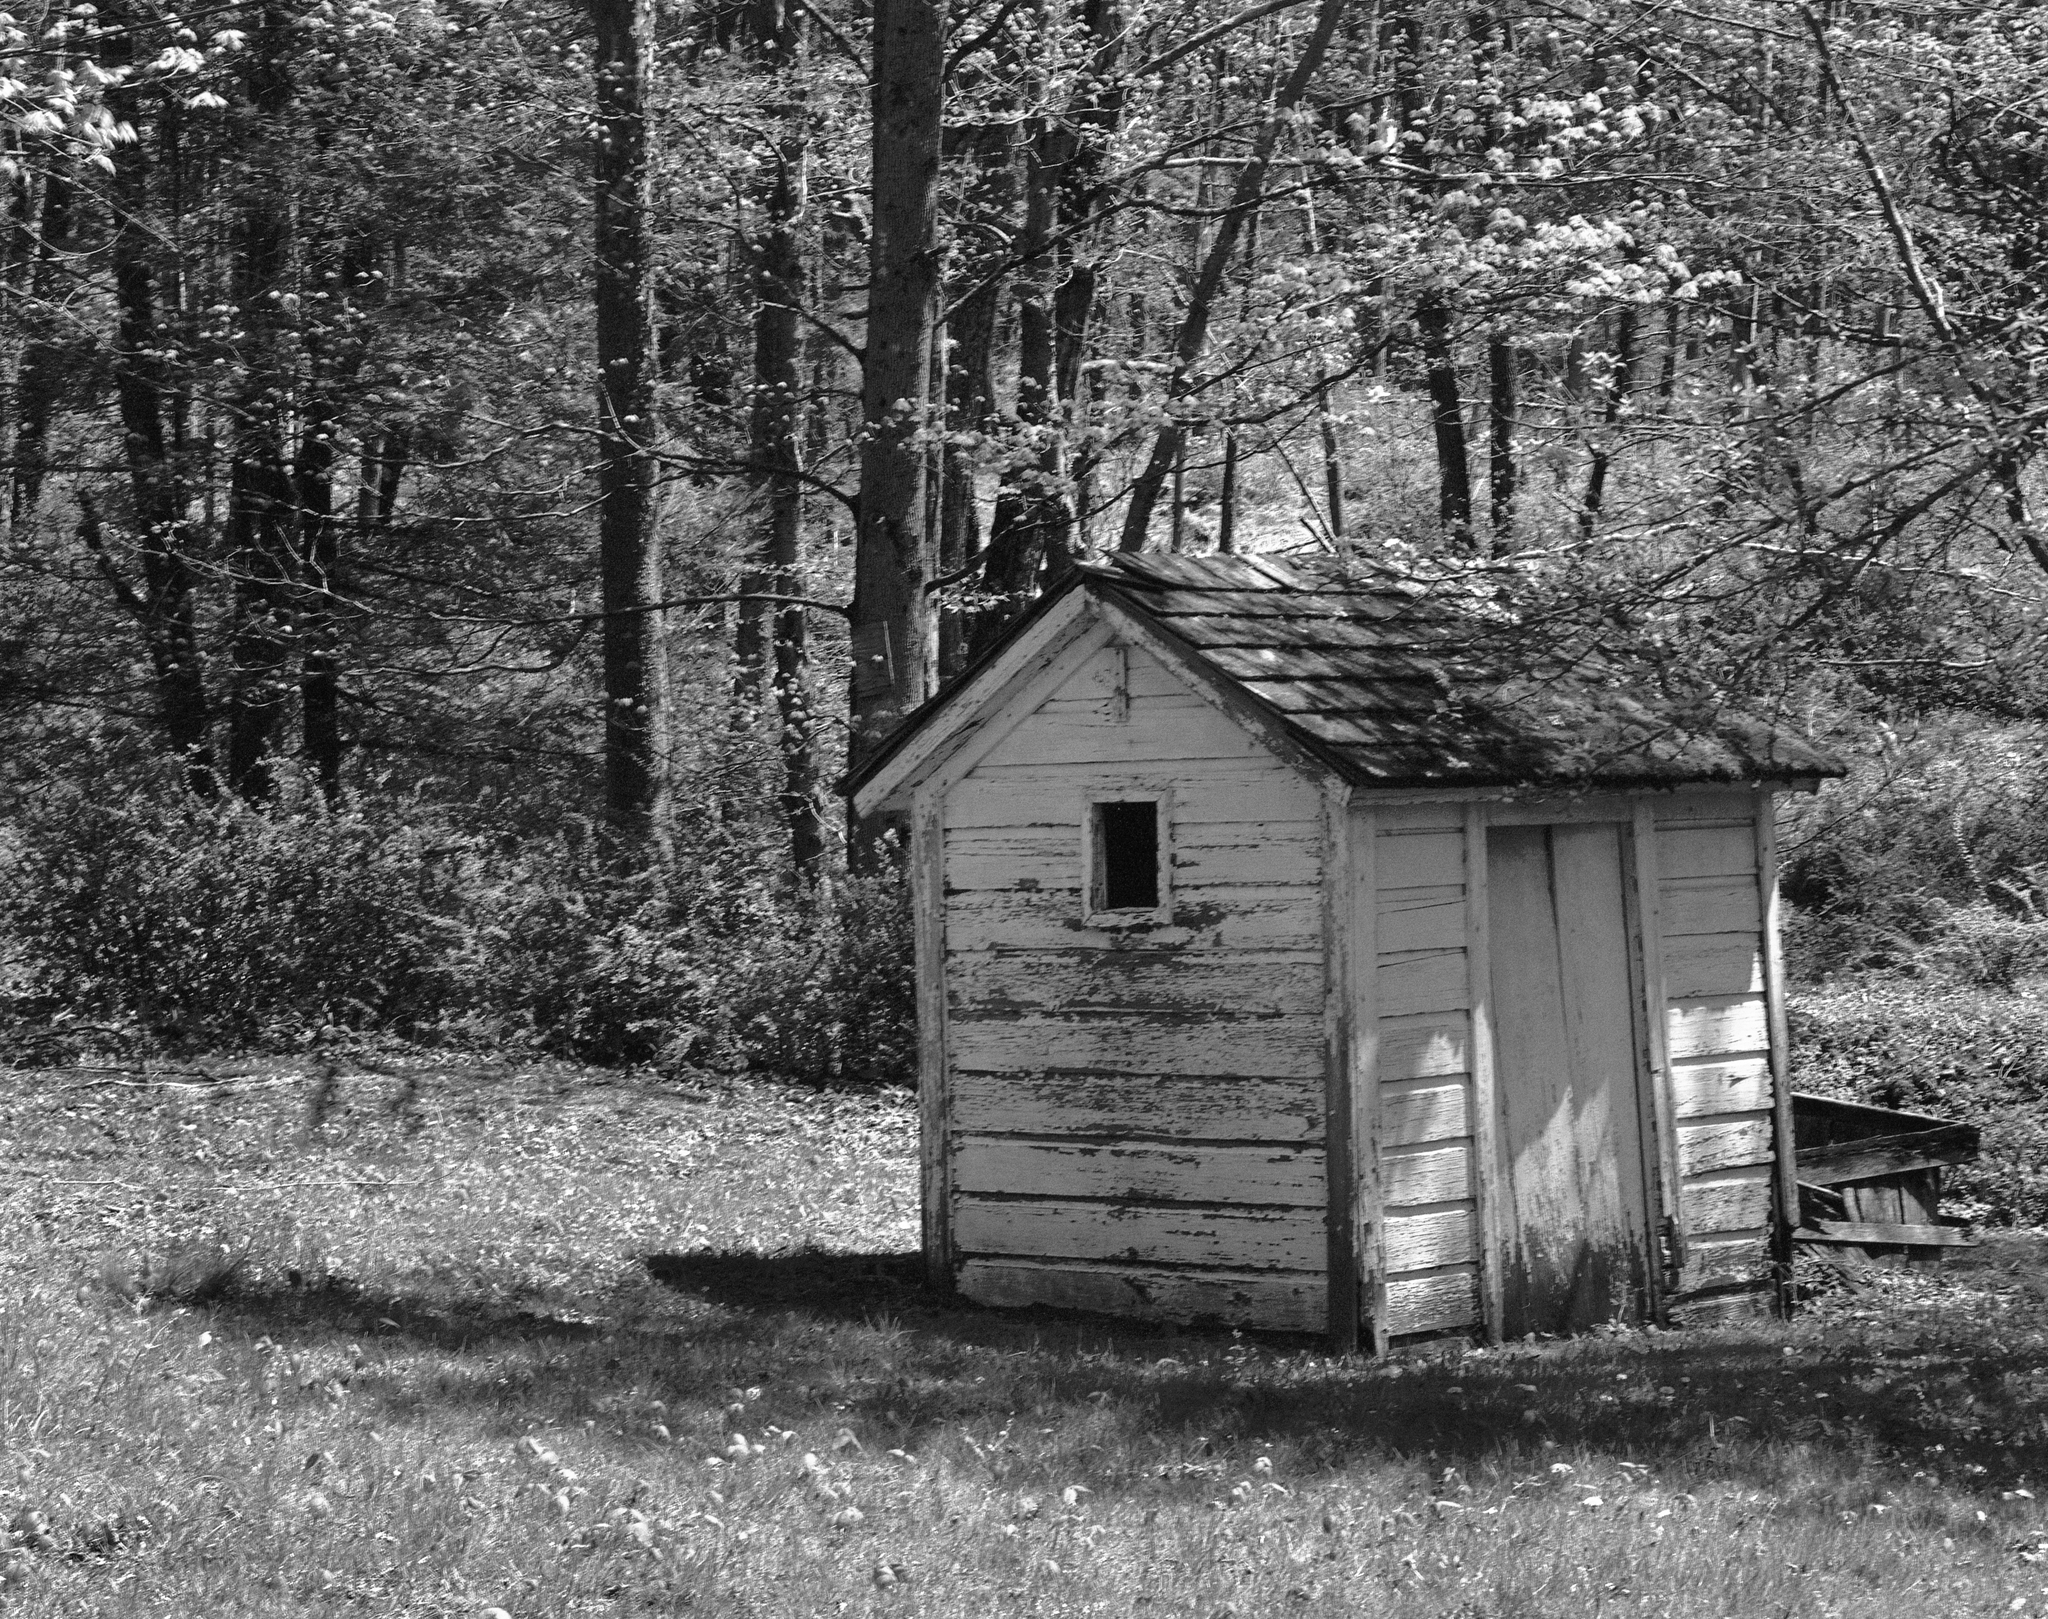 4x5_for_365_project_0136_Millbrook_small_shed.png